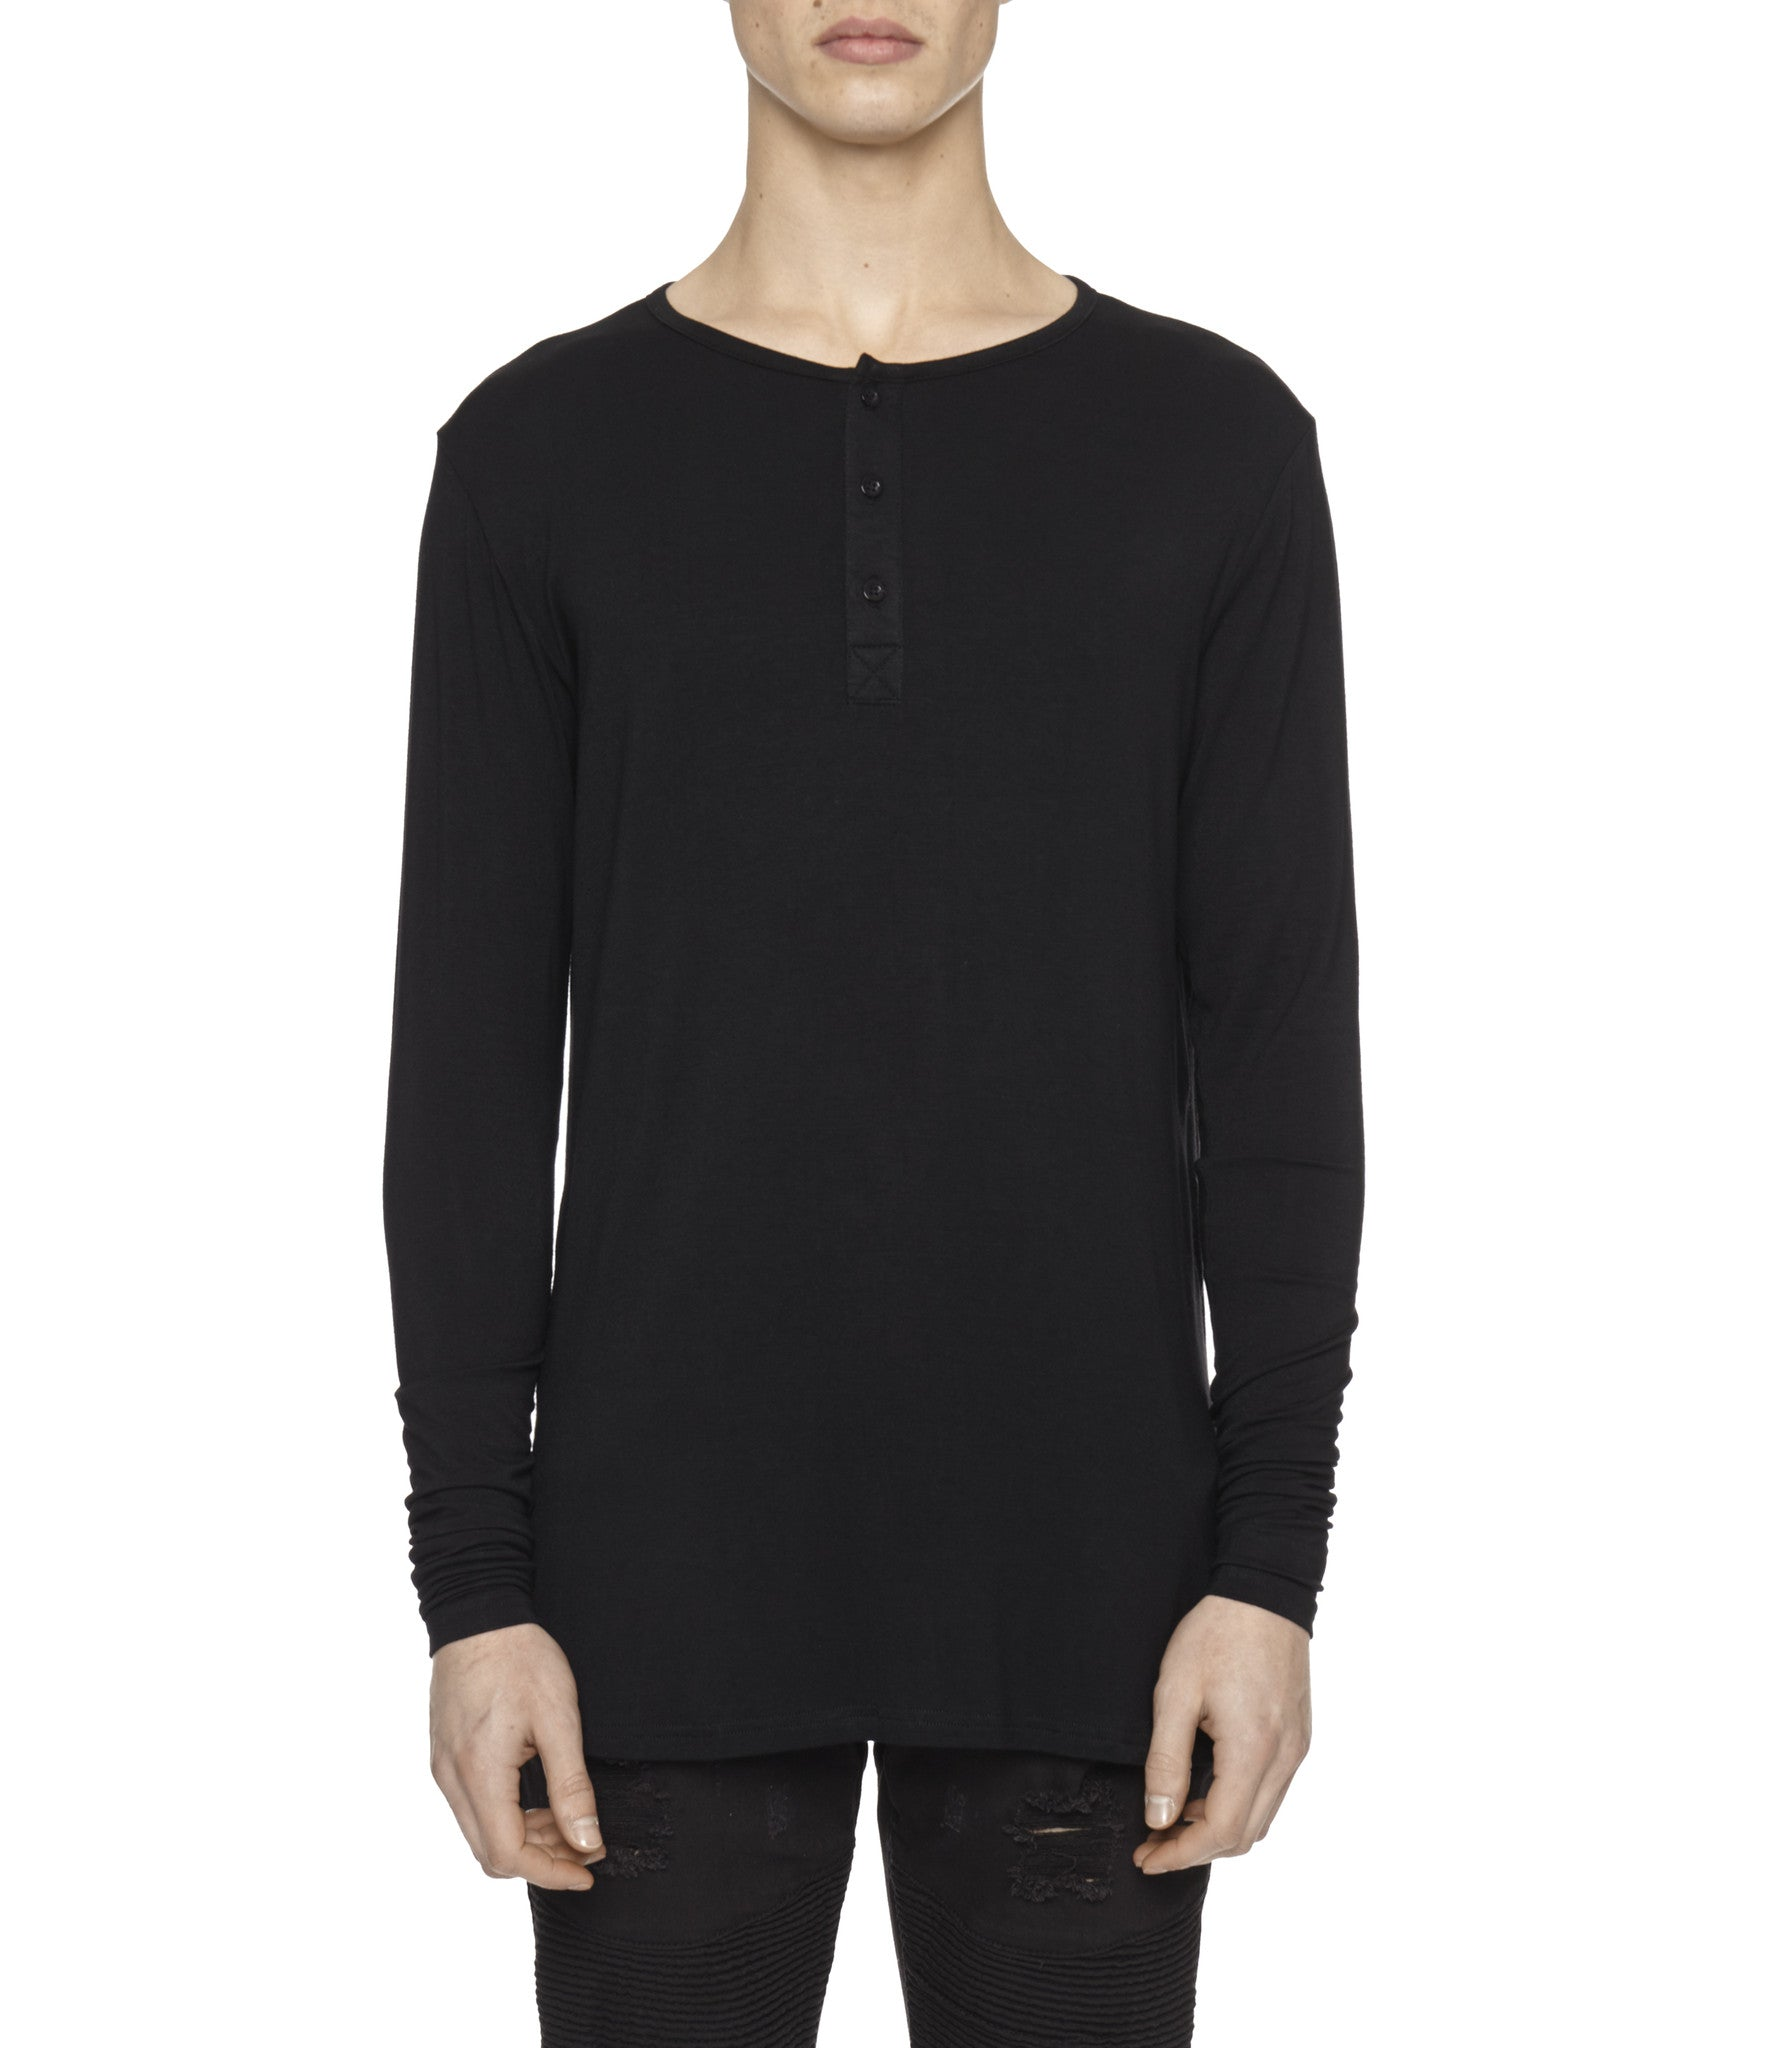 LS264 Under Layer Henley Tee - Black - underated london - underatedco - 3